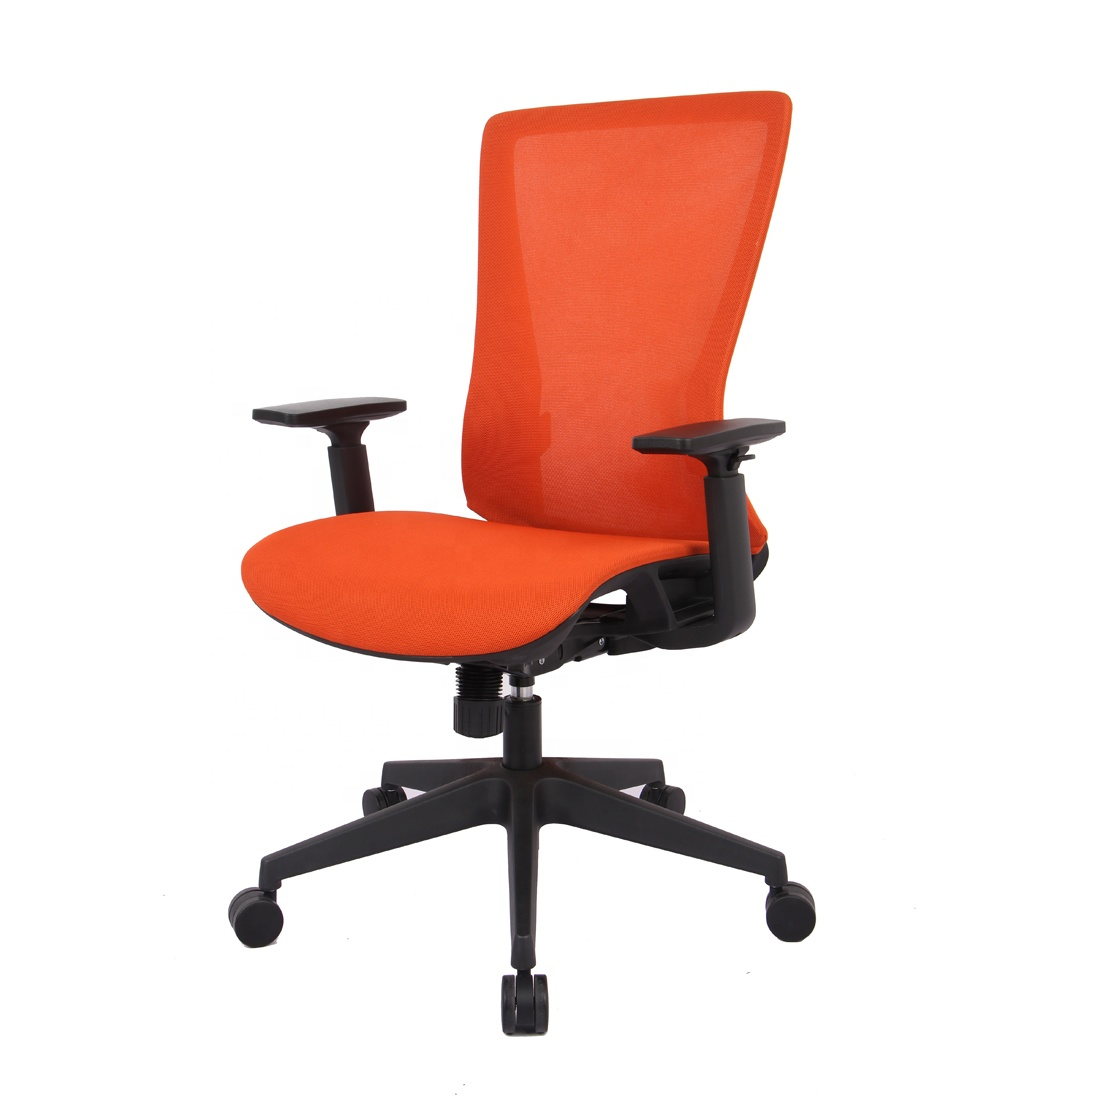 Good Quality Henglin brand commercial office furniture Professional Comfortable Ergonomic Mesh Office Chair